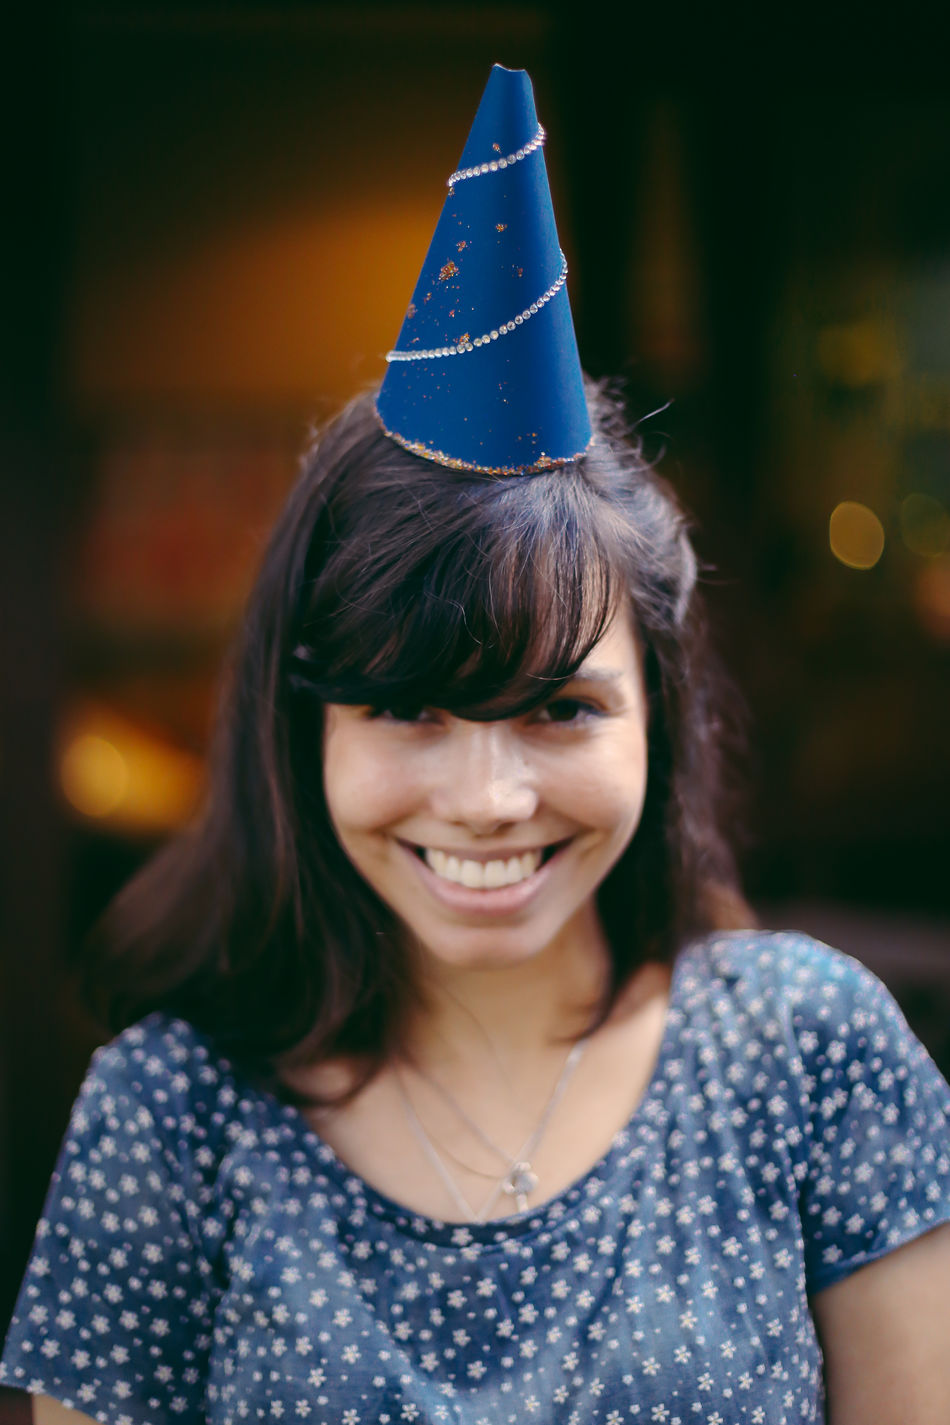 Do it yourself: party hats! Birthday Birthday Party Birthdaygirl Birthdays Celebration Celebration Cheerful DIY Enjoy The New Normal Fun Happiness Happiness Happy Hat Headshot One Person Only Women Party - Social Event Party Time Portrait Portrait Of A Friend Portrait Of A Woman Real People Smiling